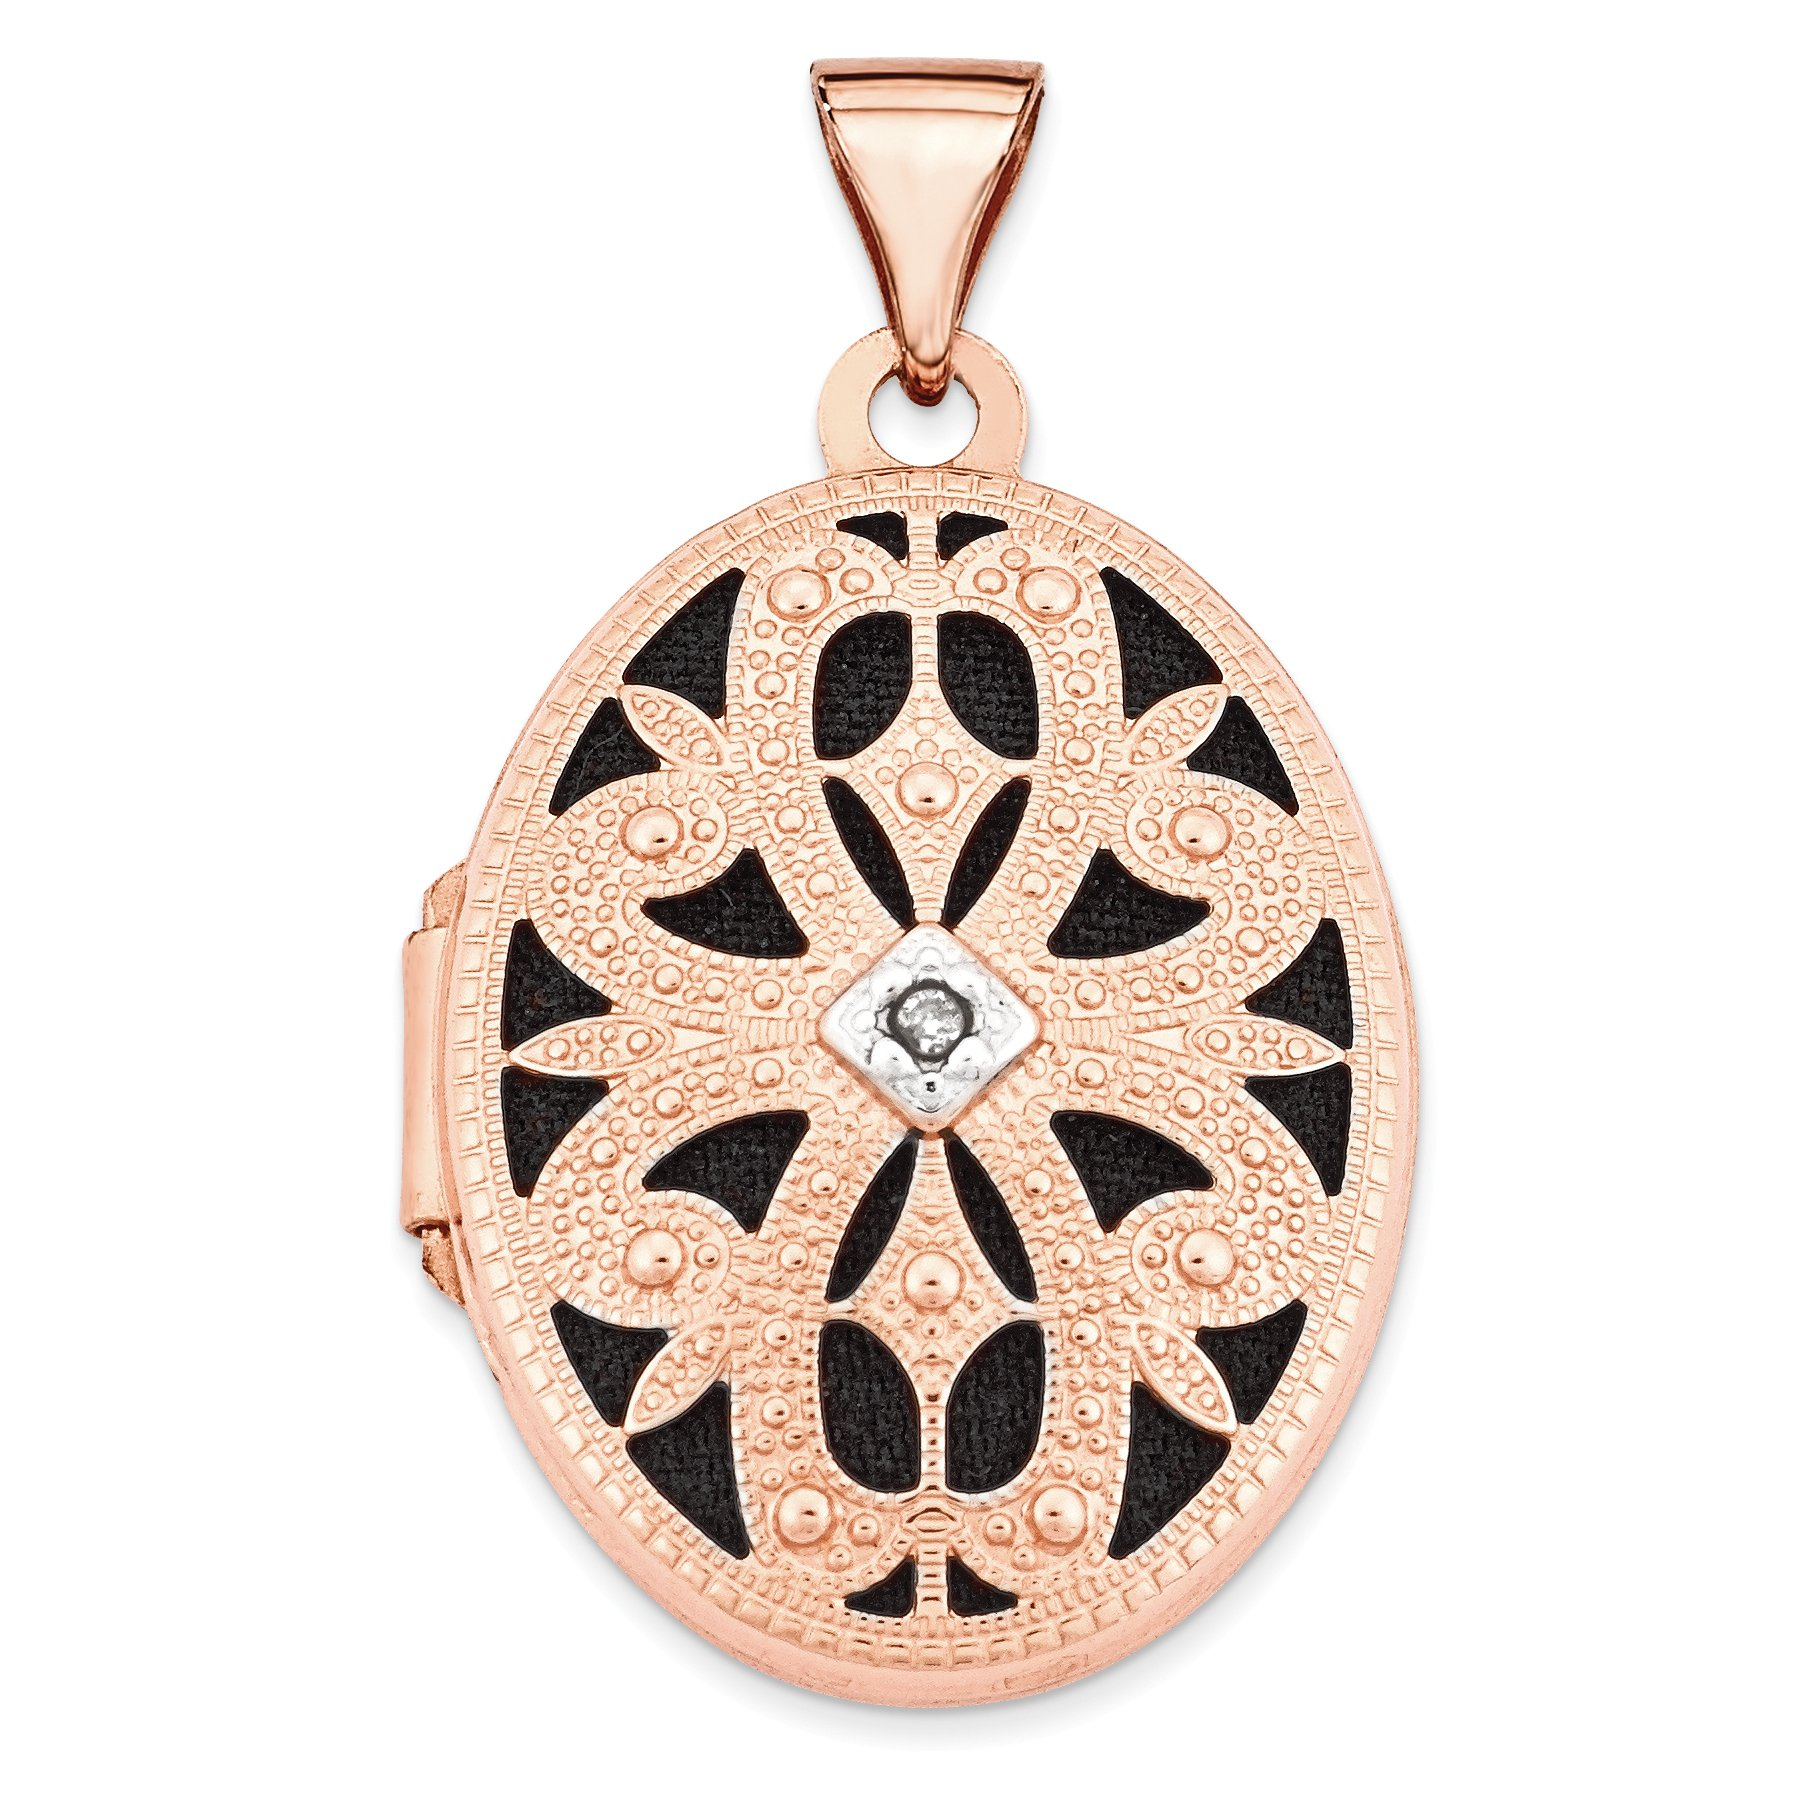 ICE CARATS 14k Rose Gold 21mm Oval Diamond Vintage Black Interior Photo Pendant Charm Locket Chain Necklace That Holds Pictures Fine Jewelry Gift Set For Women Heart